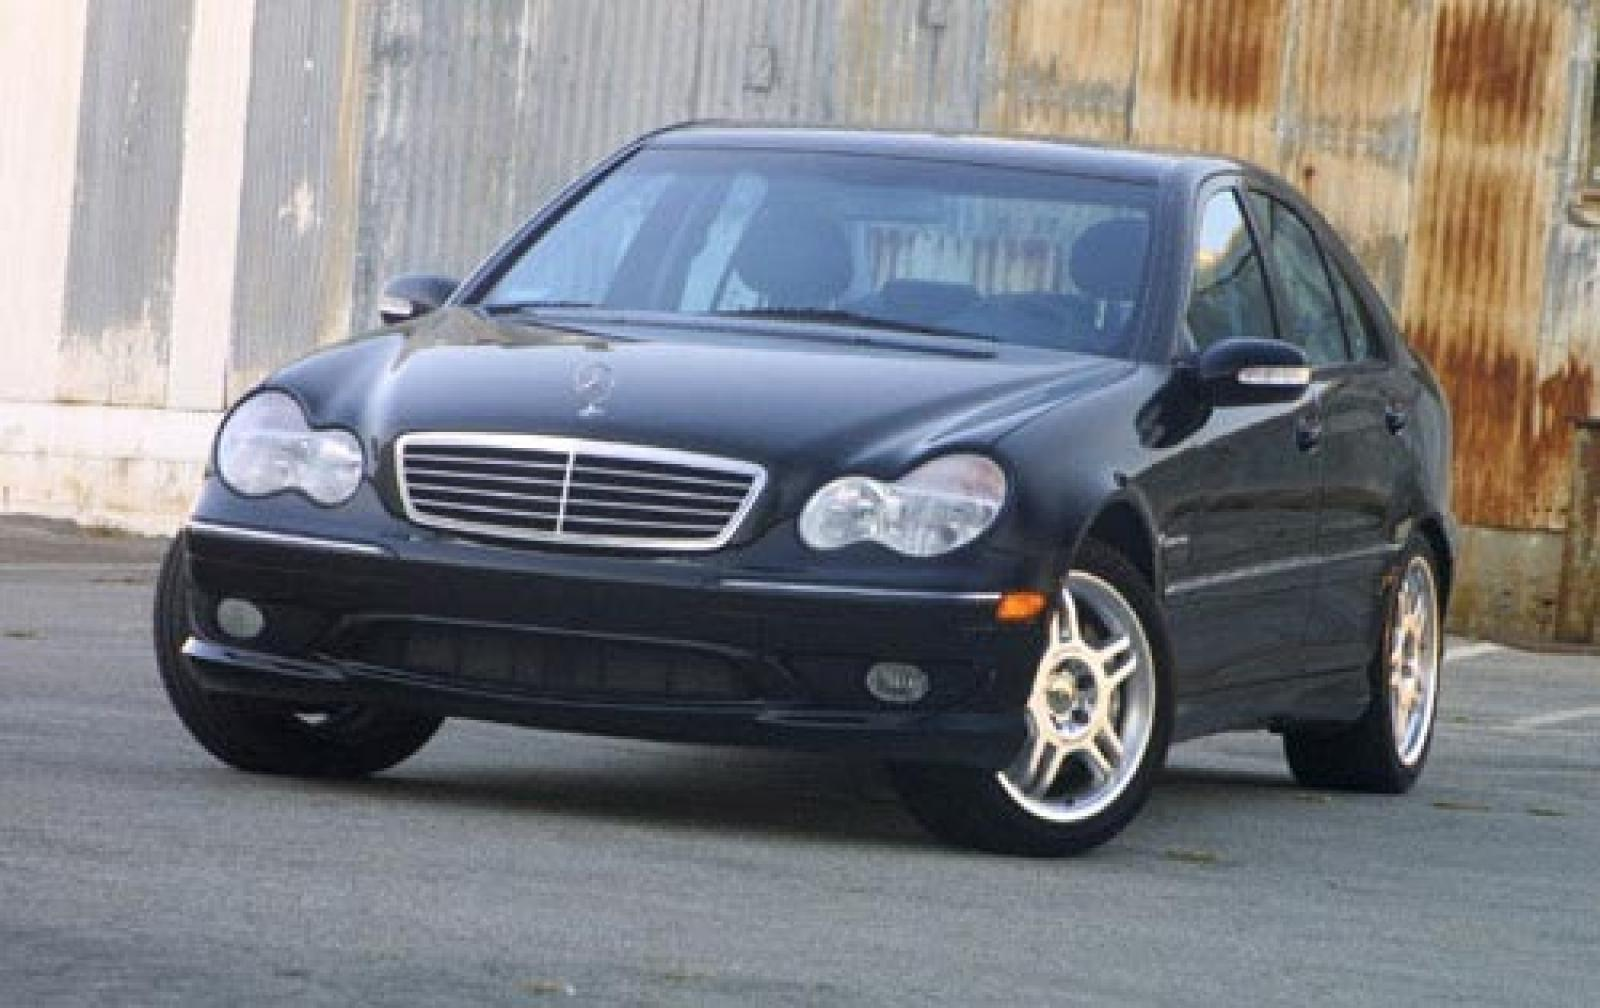 Mercedes Benz Repair Washington Dc >> Service manual [Transmission Control 2001 Mercedes Benz M Class Head Up Display] - 2001 Mercedes ...